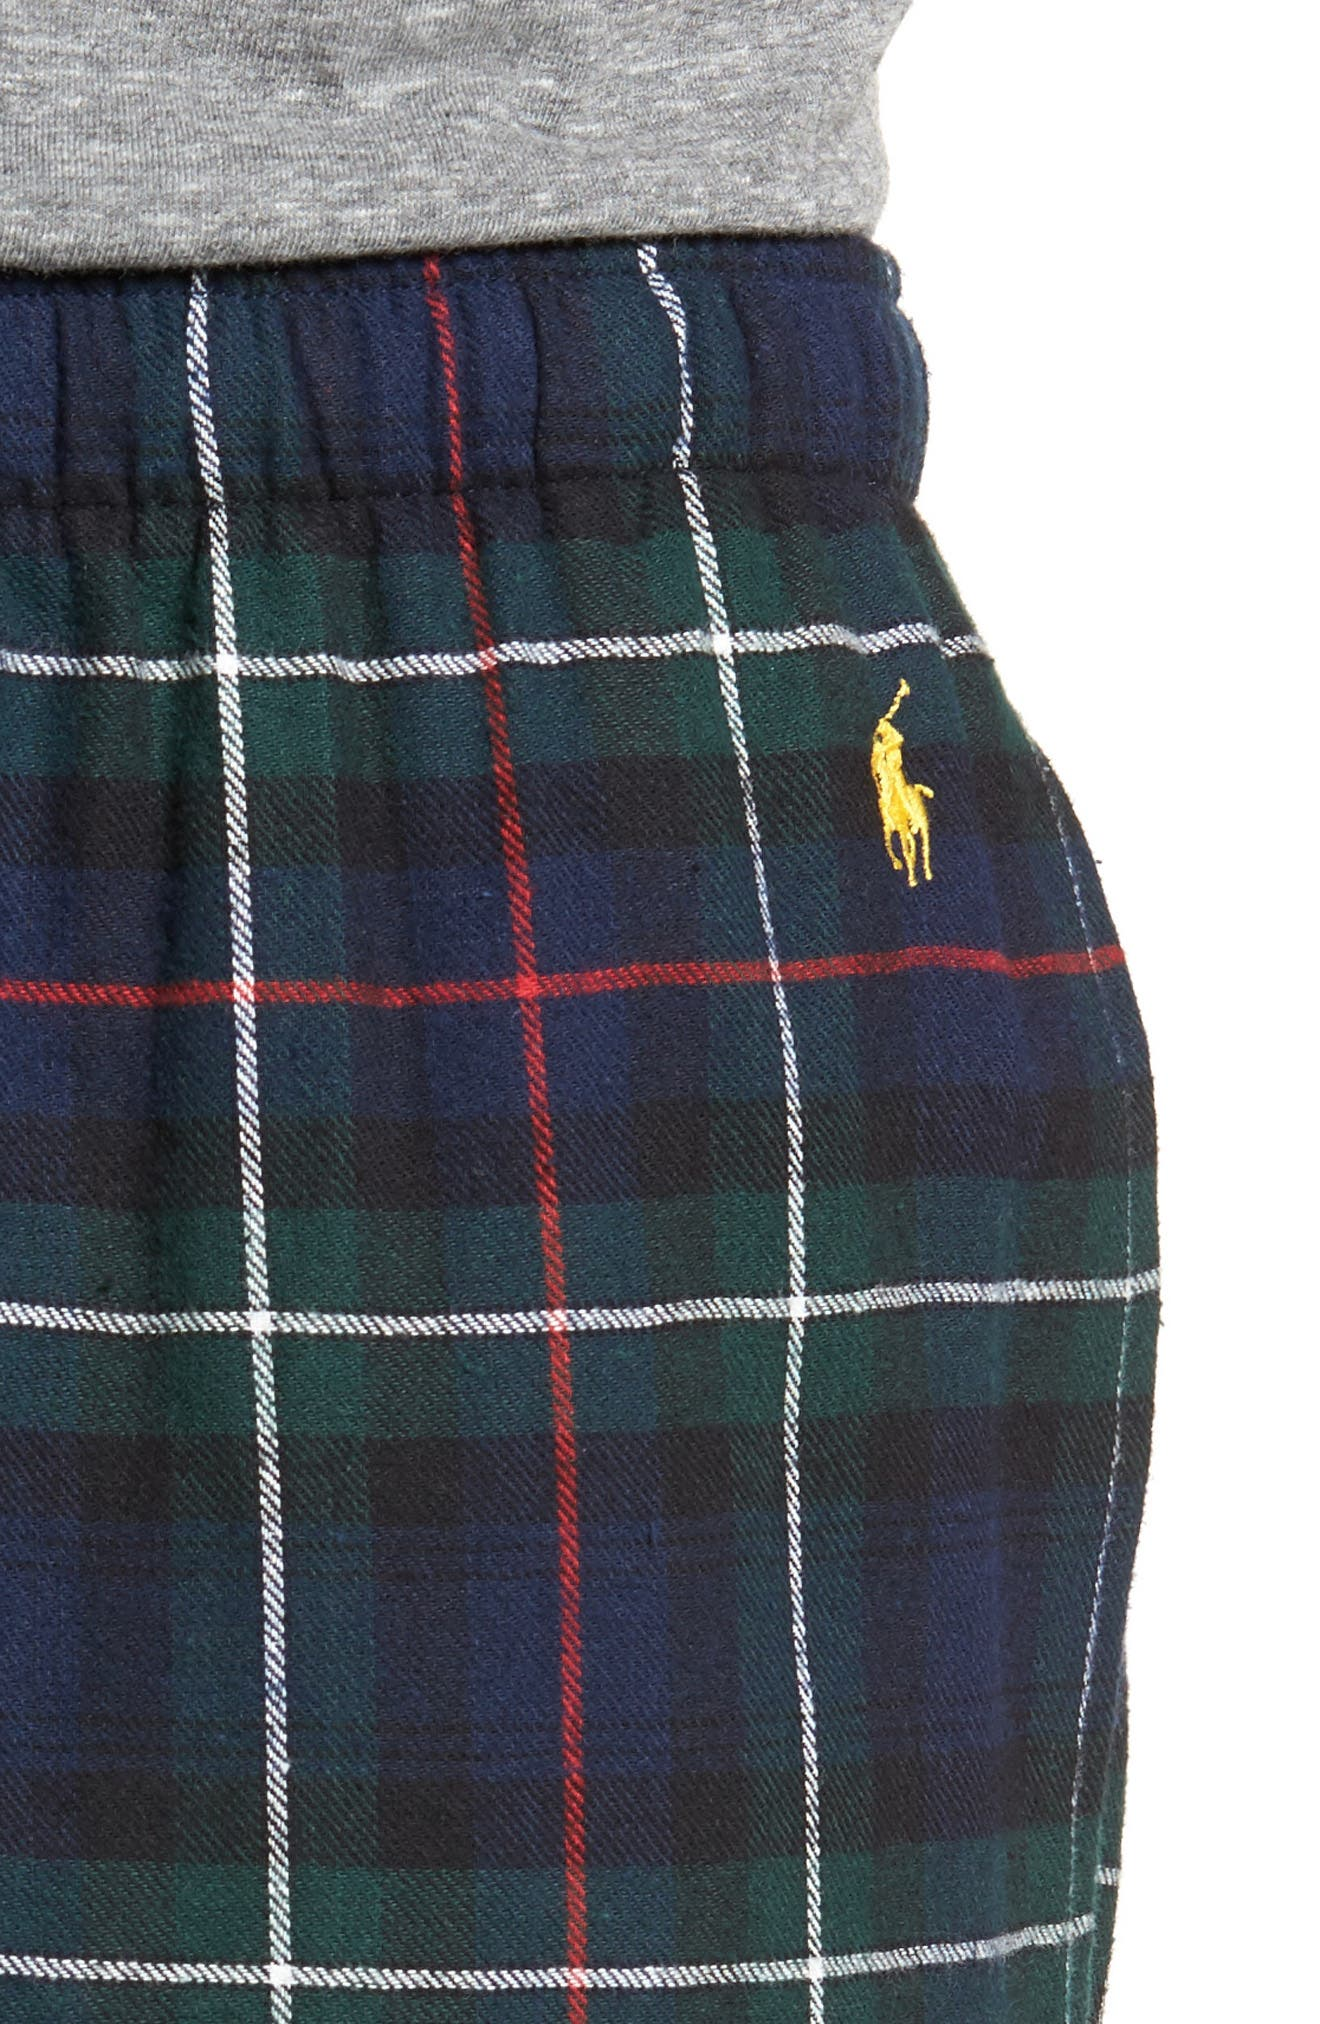 Flannel Pajama Pants,                             Alternate thumbnail 4, color,                             Blackwatch/ Cruise Navy/ Gold